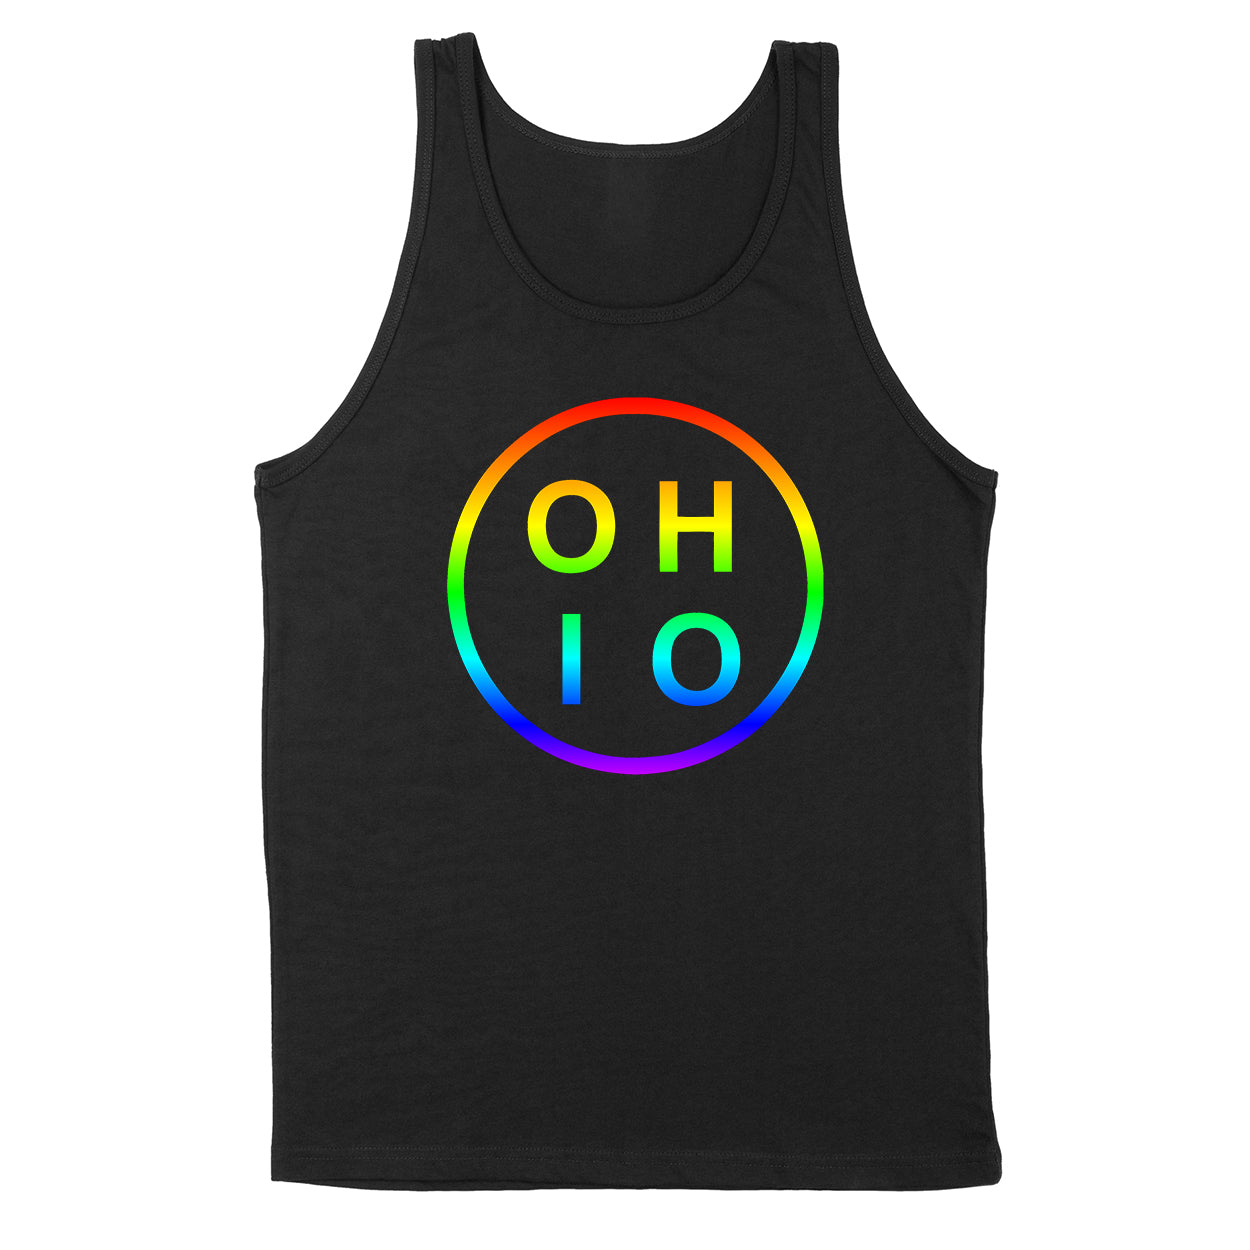 Pride Circle Ohio Men's Unisex Tank